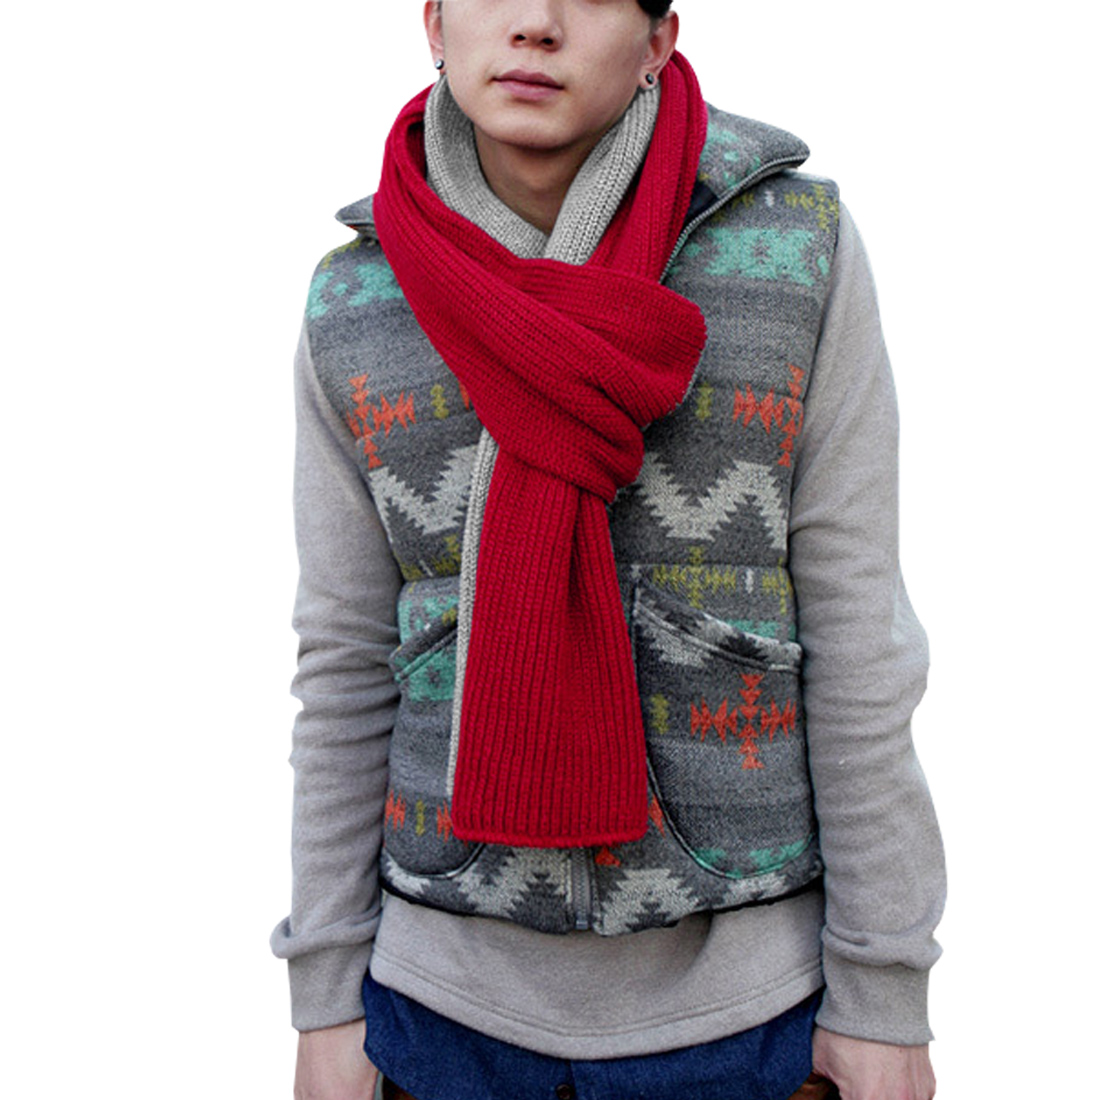 Mens Red Light Gray Crochet Knitting Autumn Stylish Long Shawl Wrap Scarf